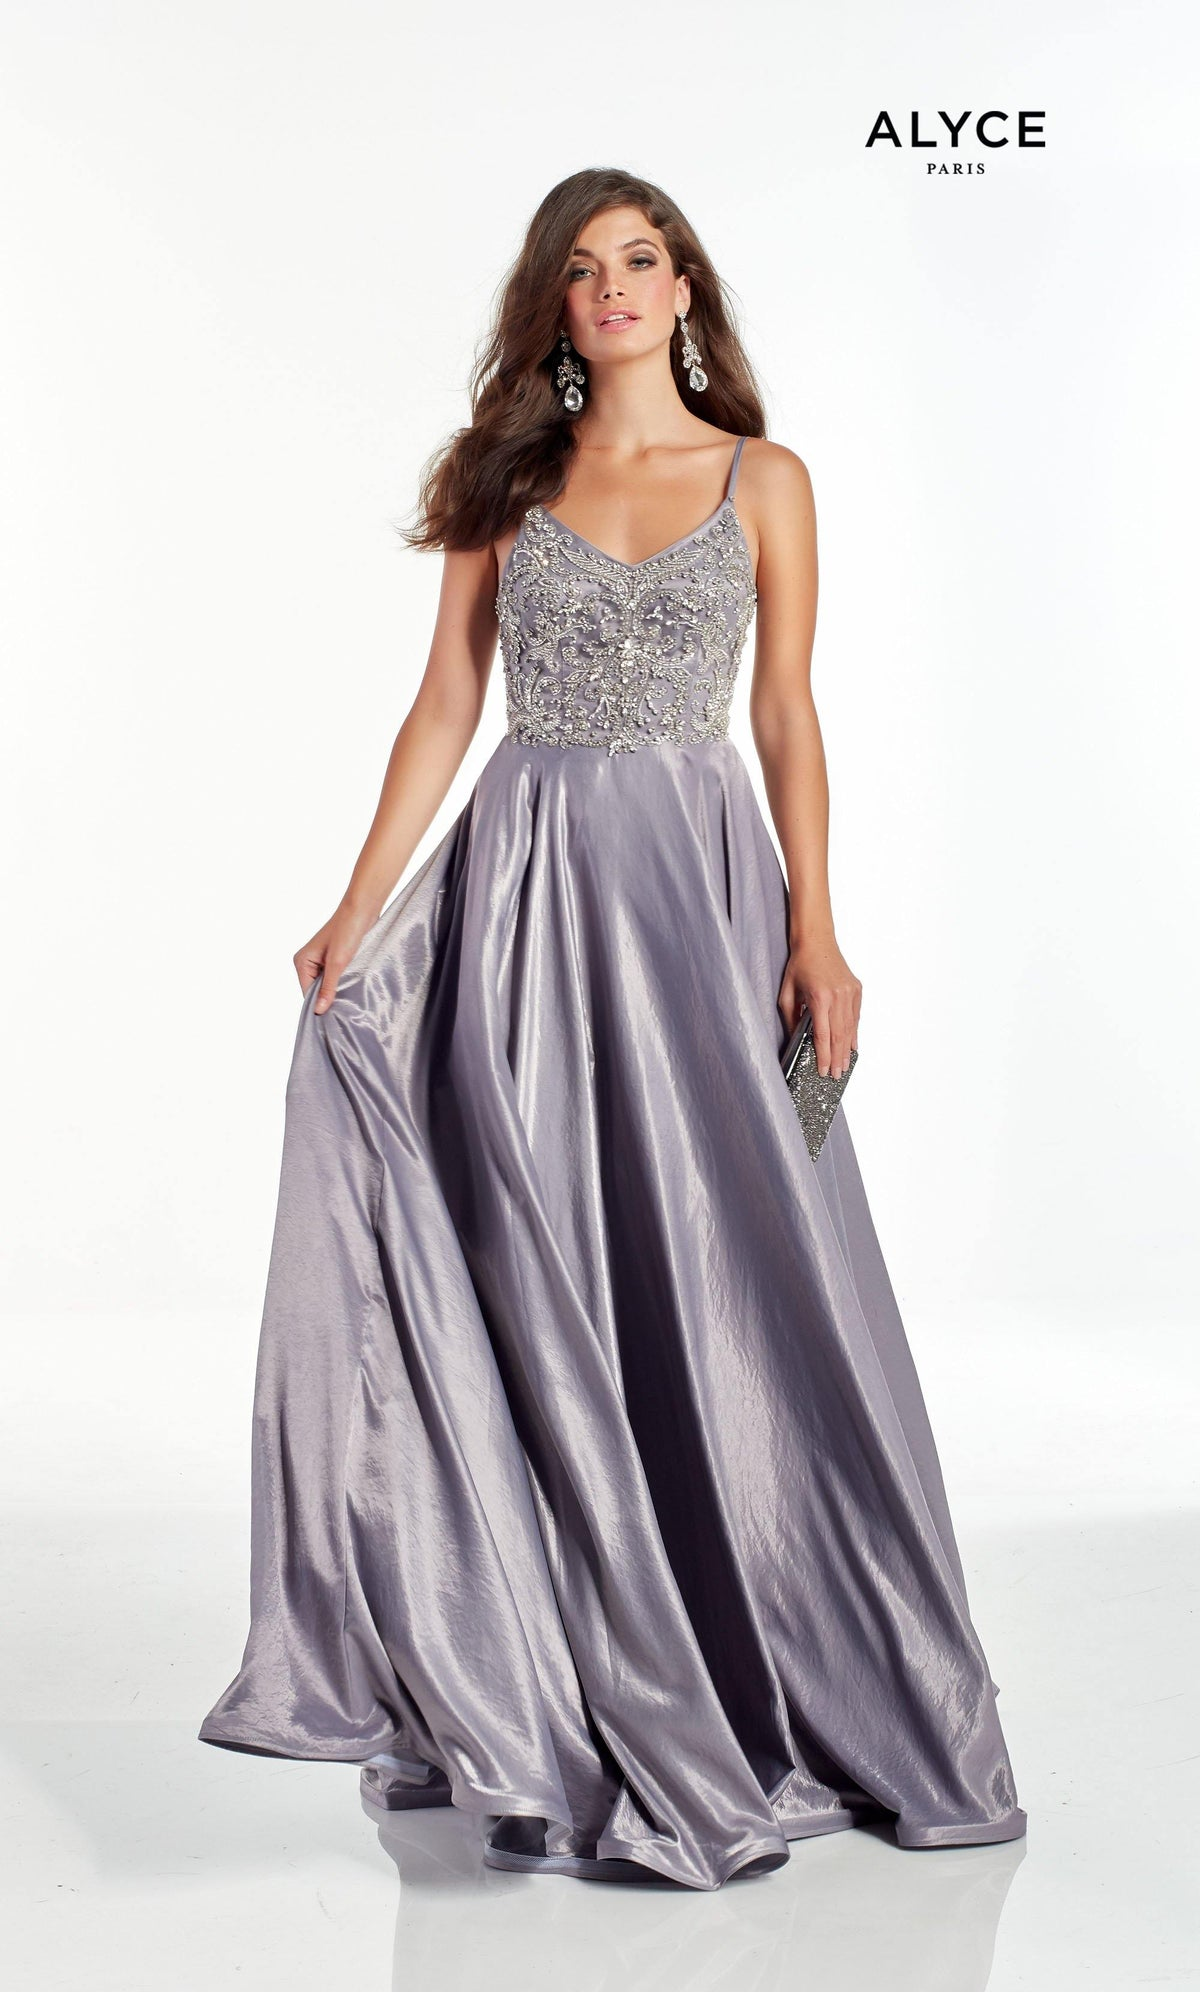 Lilac-Grey flowy prom dress with a V neckline and embellished bodice